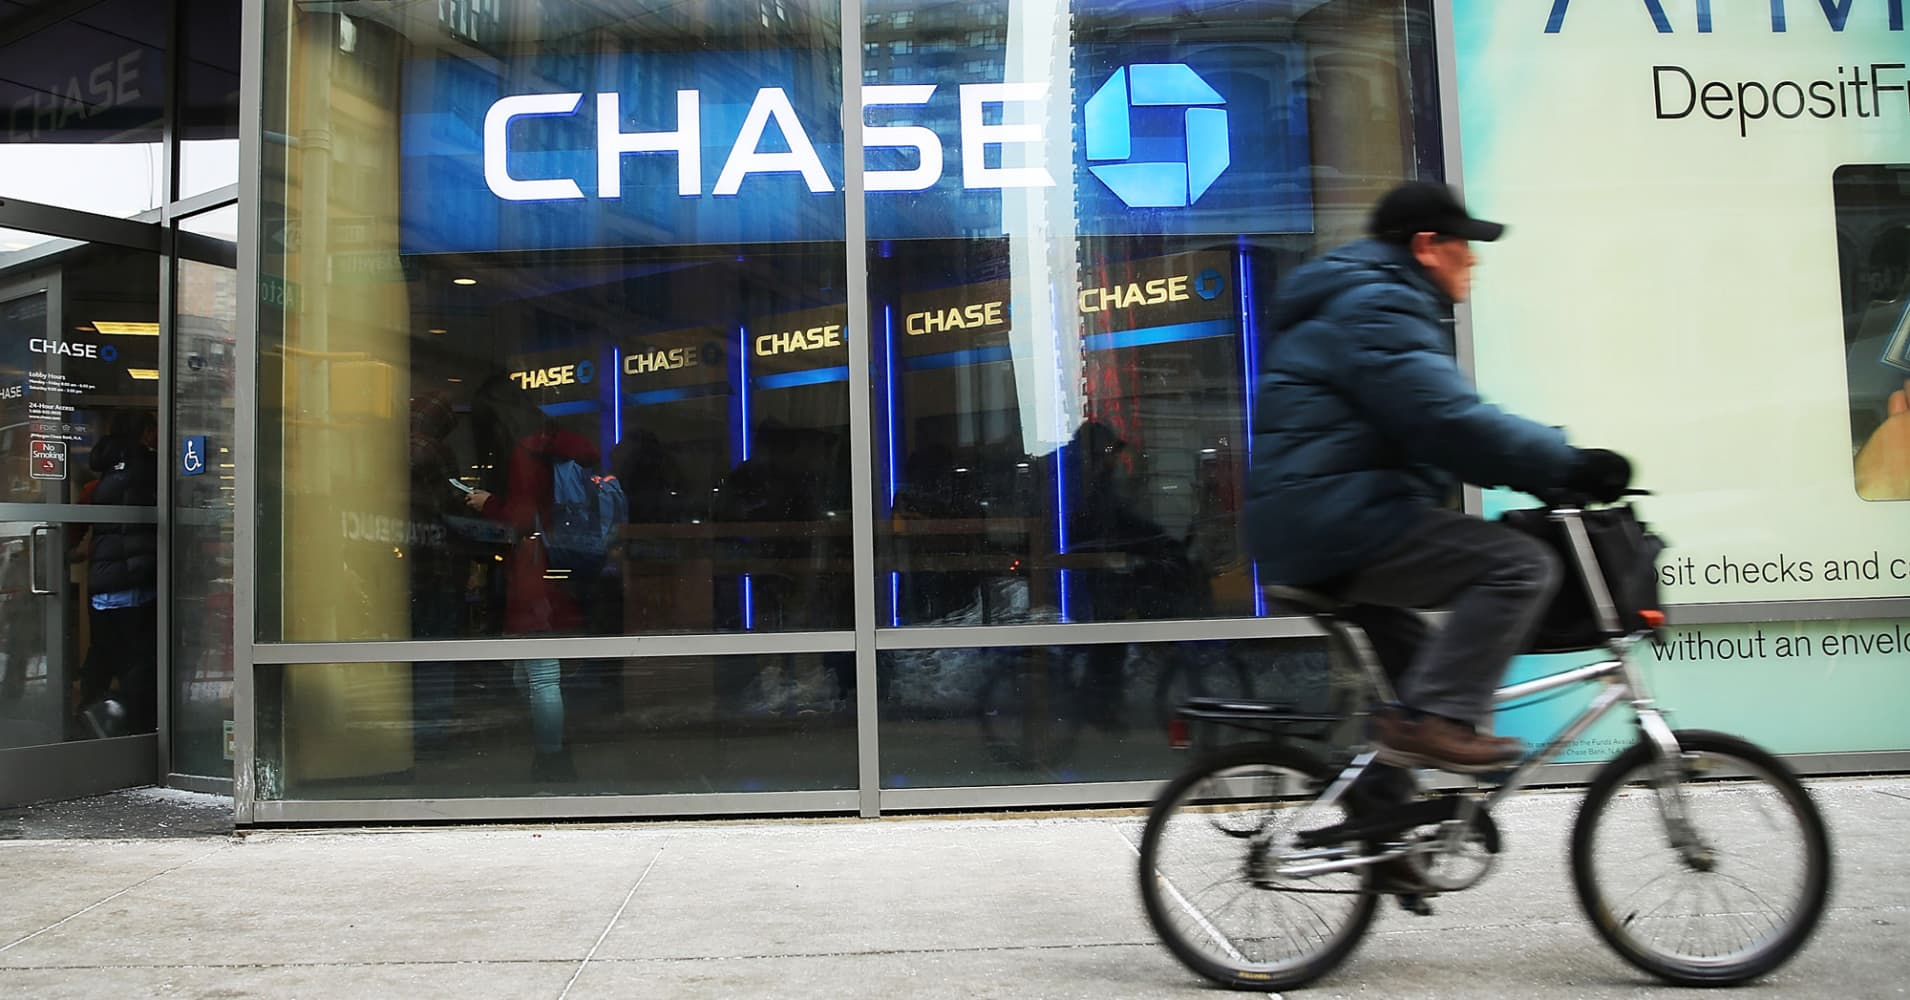 JPMorgan Chase Plans to Cut Sapphire Reserve Card's Bonus in Half